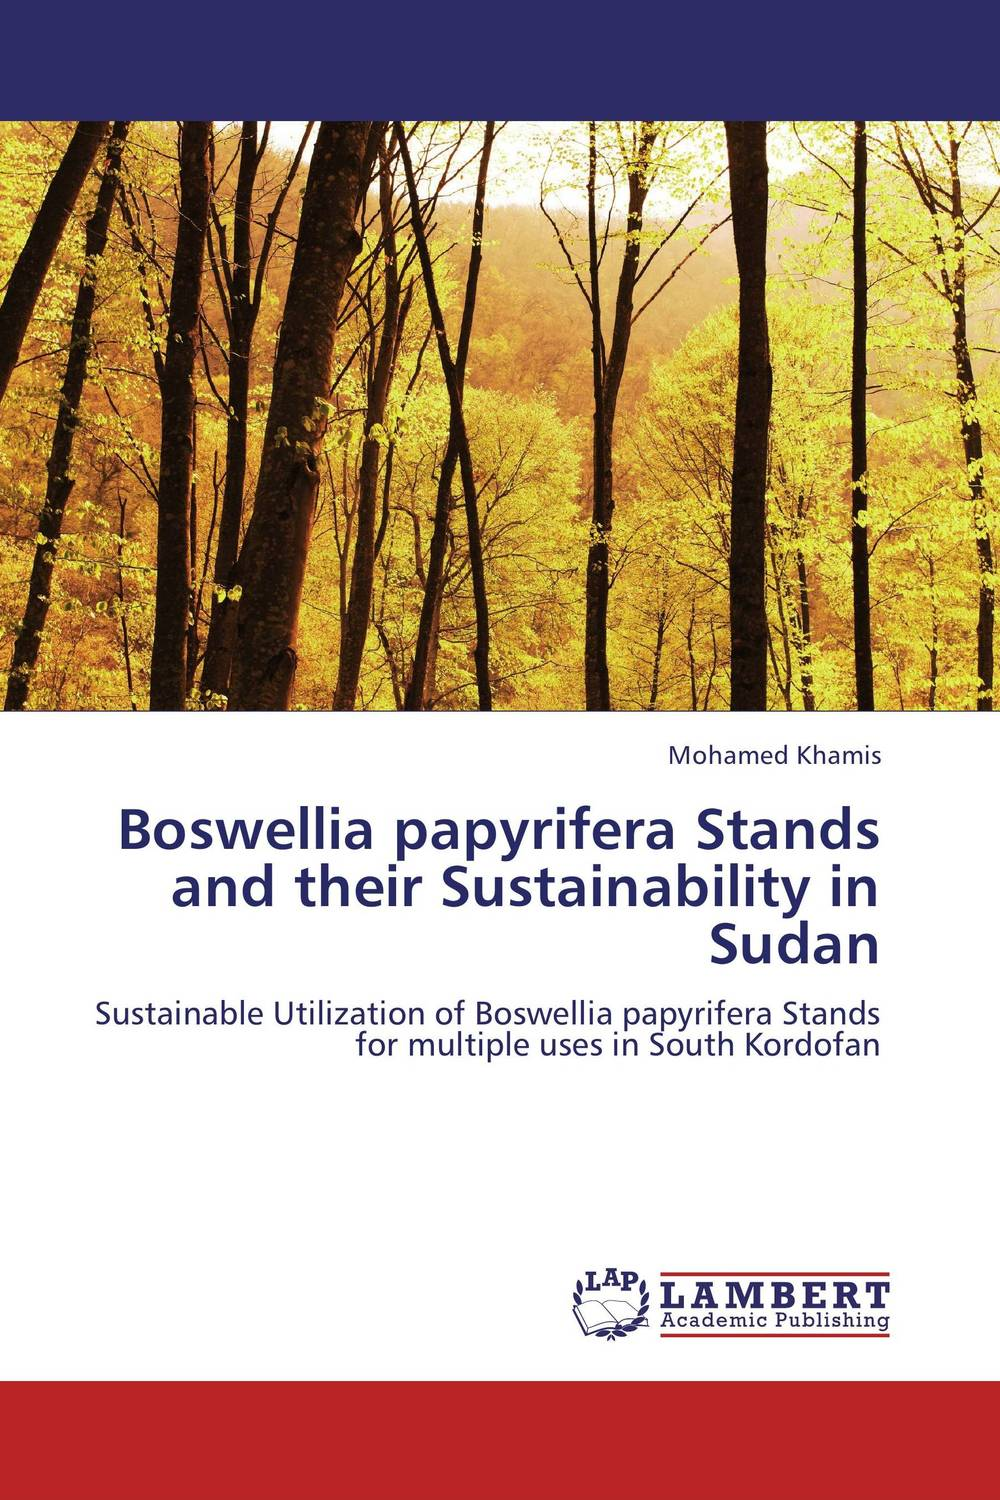 Boswellia papyrifera Stands and their Sustainability in Sudan